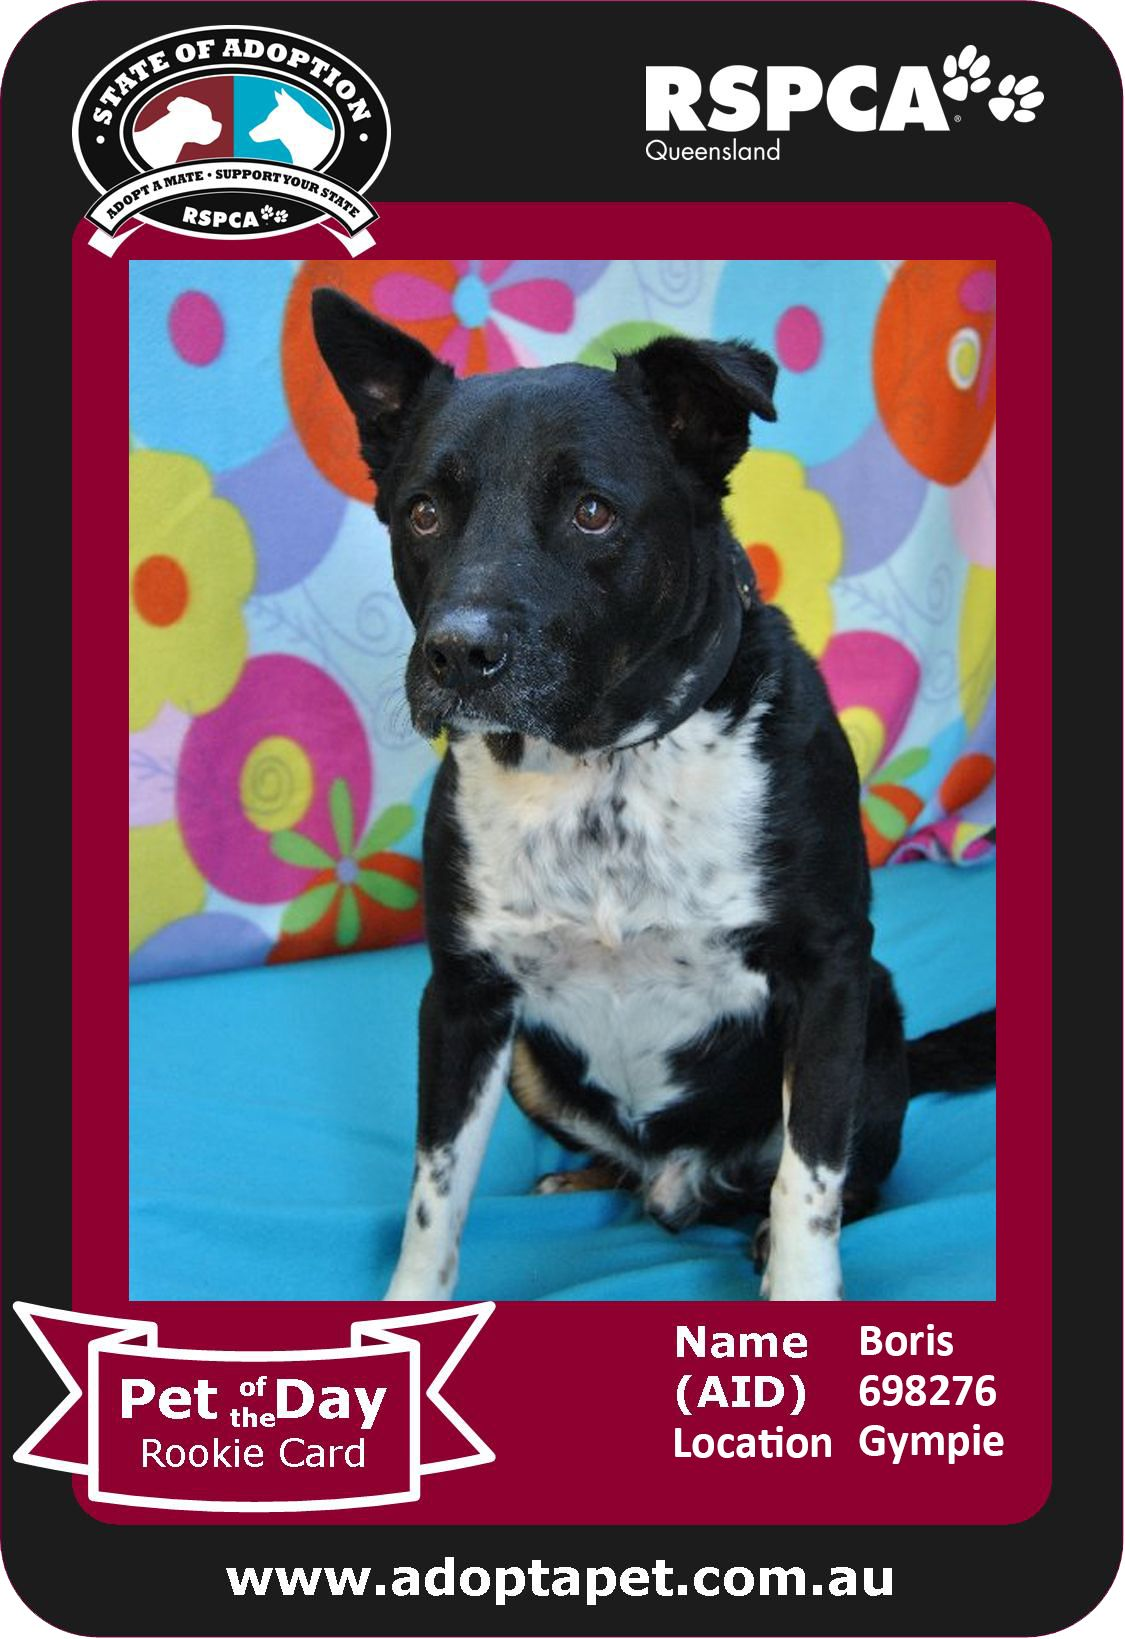 hi i'm boris. are you looking for a mature doggy with a big heart? i